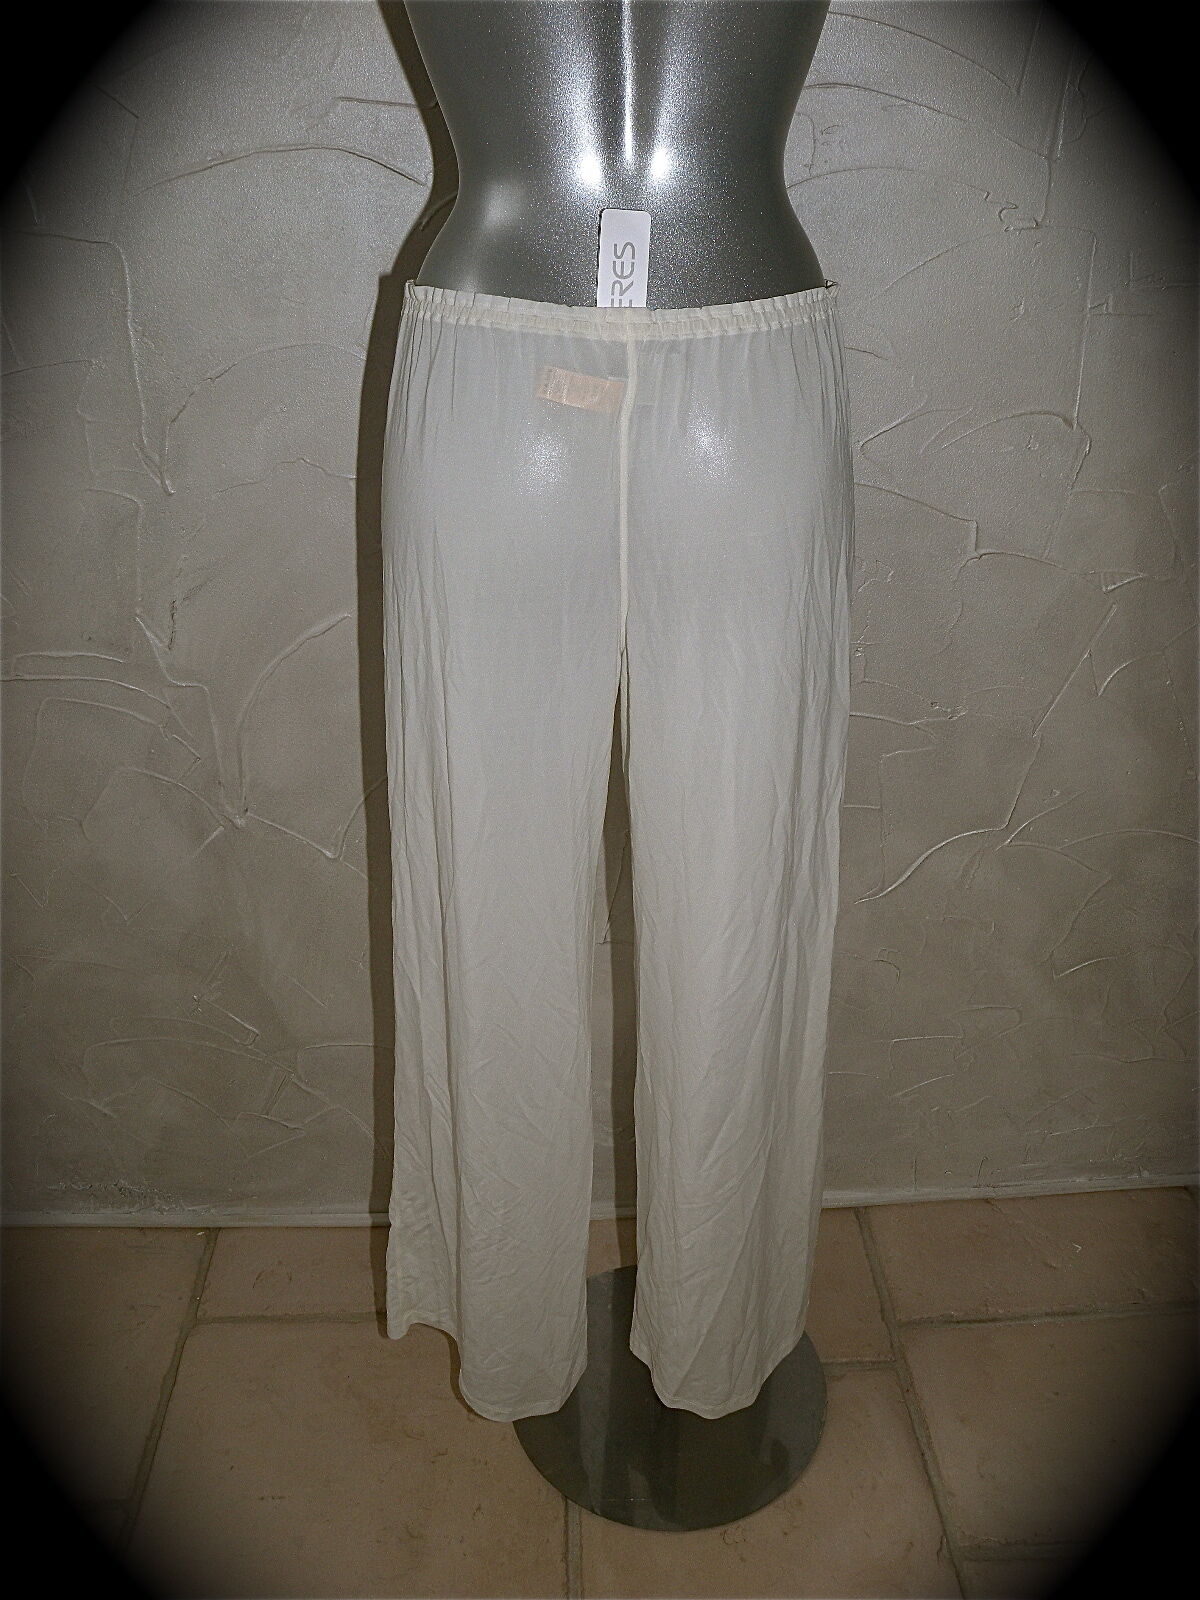 Trousers beach ERES nissa T 40 NEW LABEL GREAT LUXE val